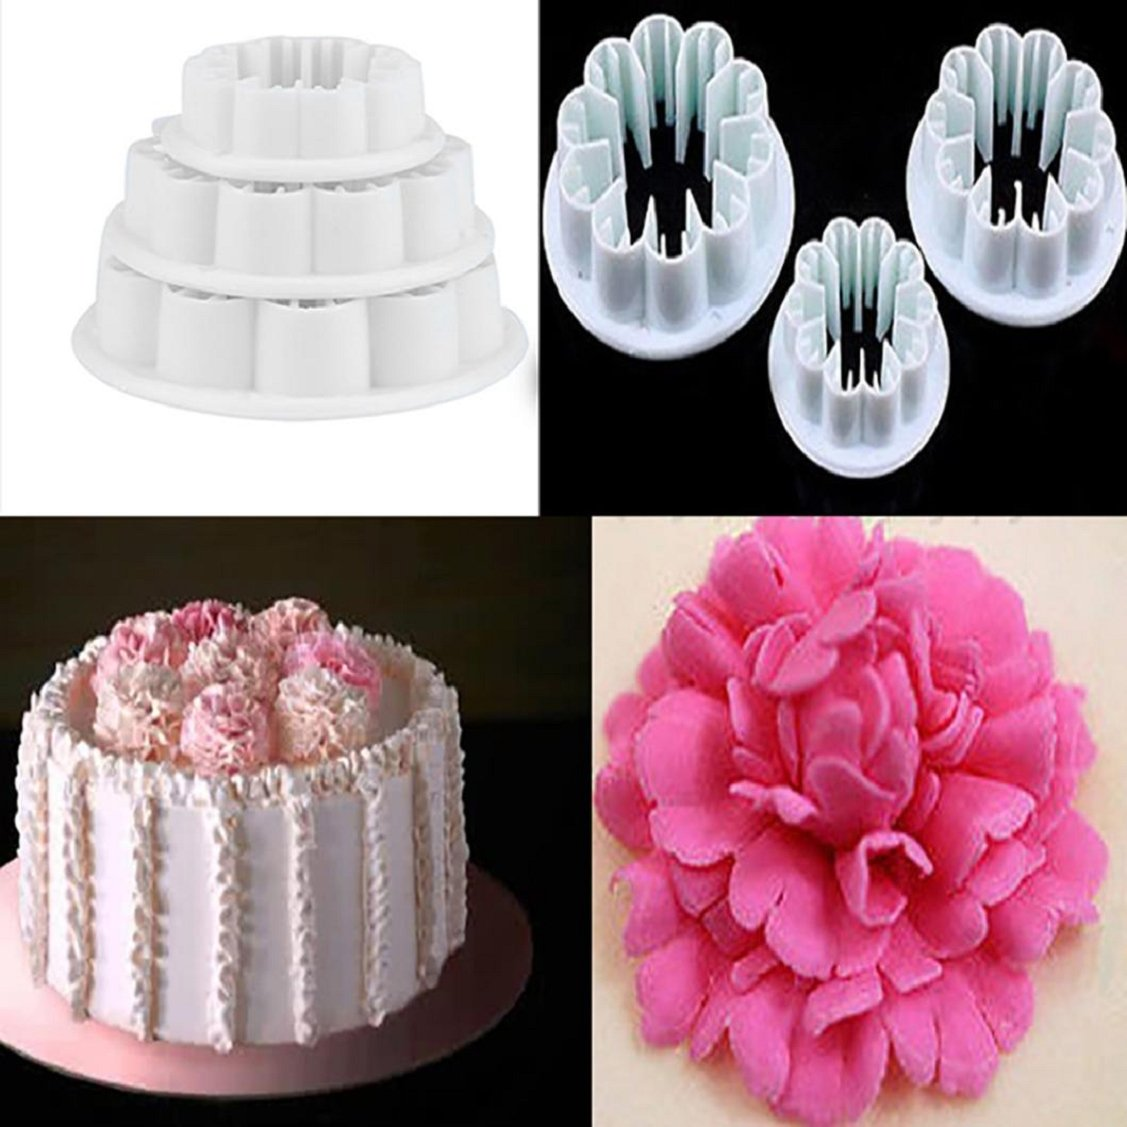 Cake Mold,Vovomay 3Pcs Decorating Carnations Flower Cake Fondant CookiePlunger Mold (White)